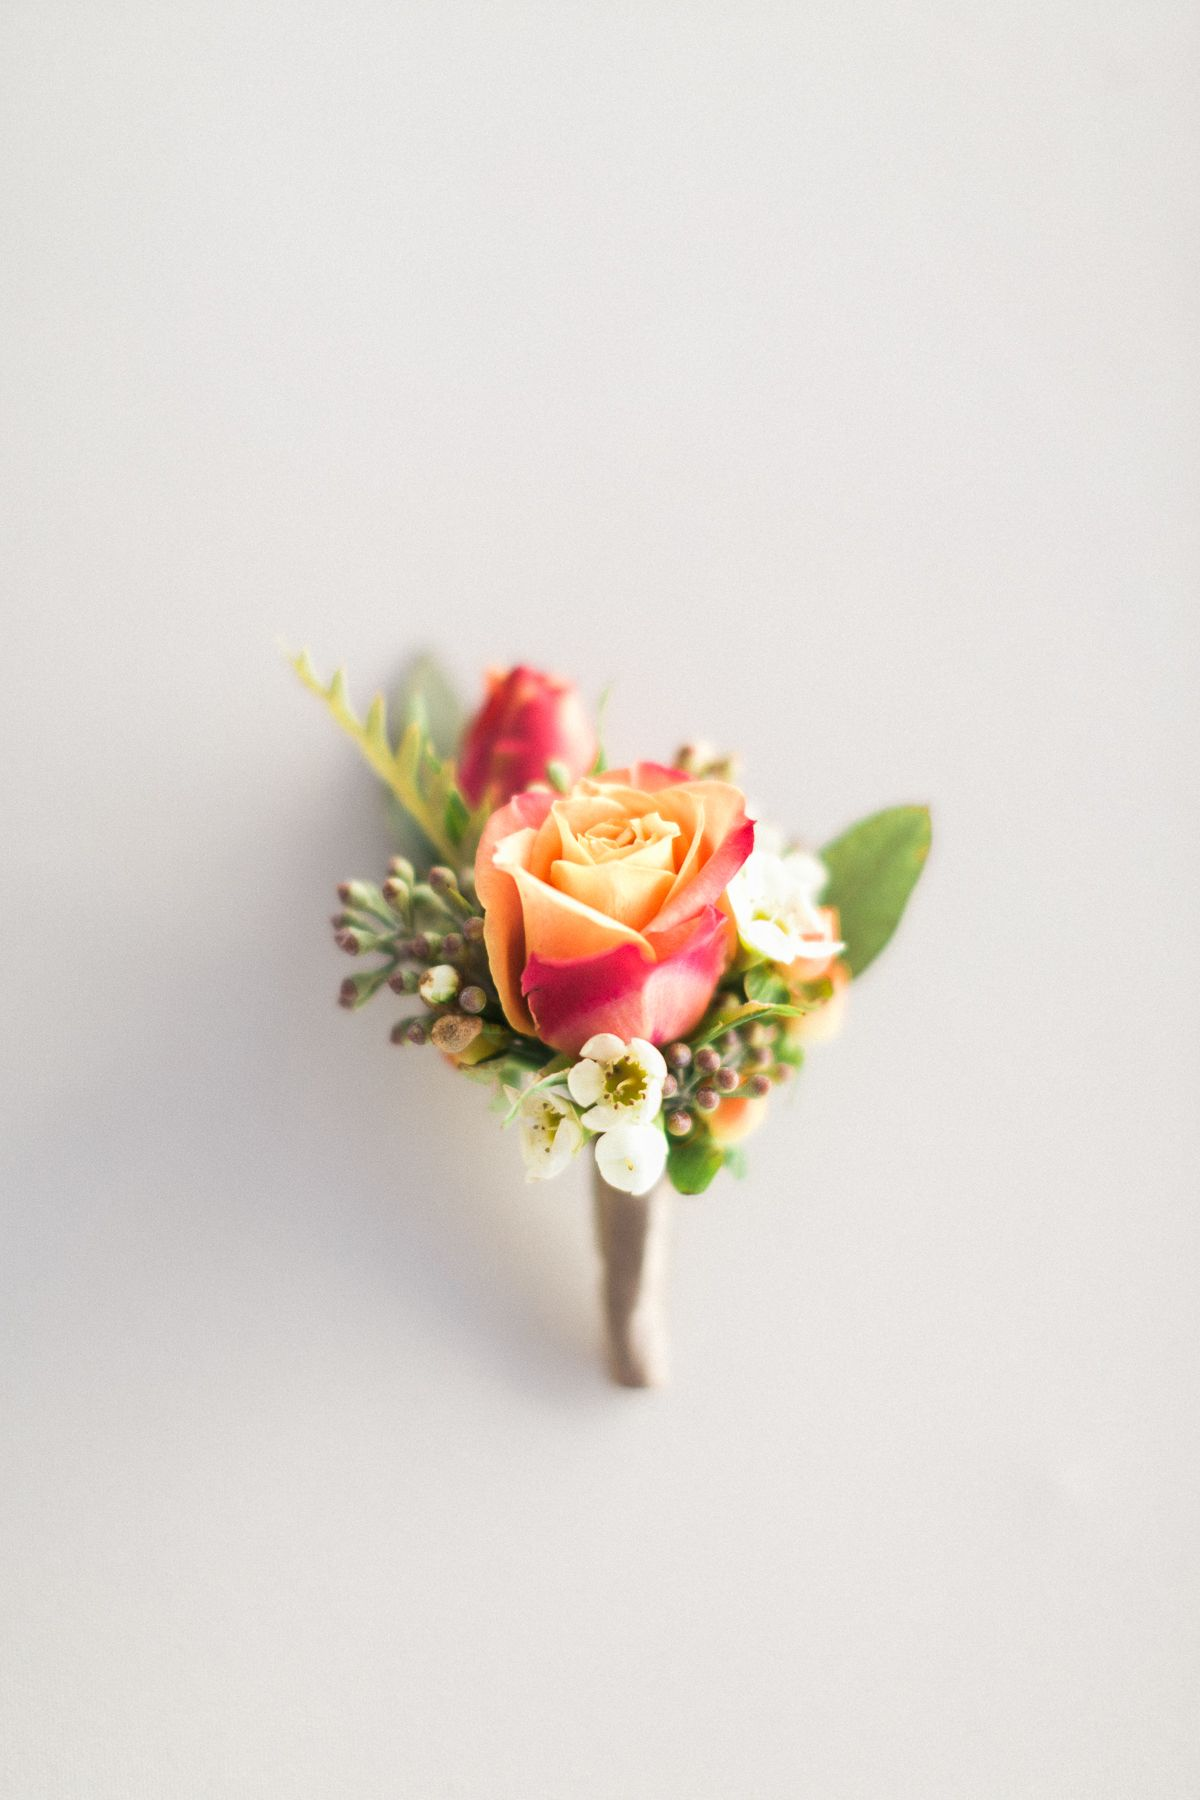 Boutonniere by Pixies Petals - www.pixiespetals.com VANESSA and BRONSON | LONG BEACH, CA Photography by Jeremy Chou